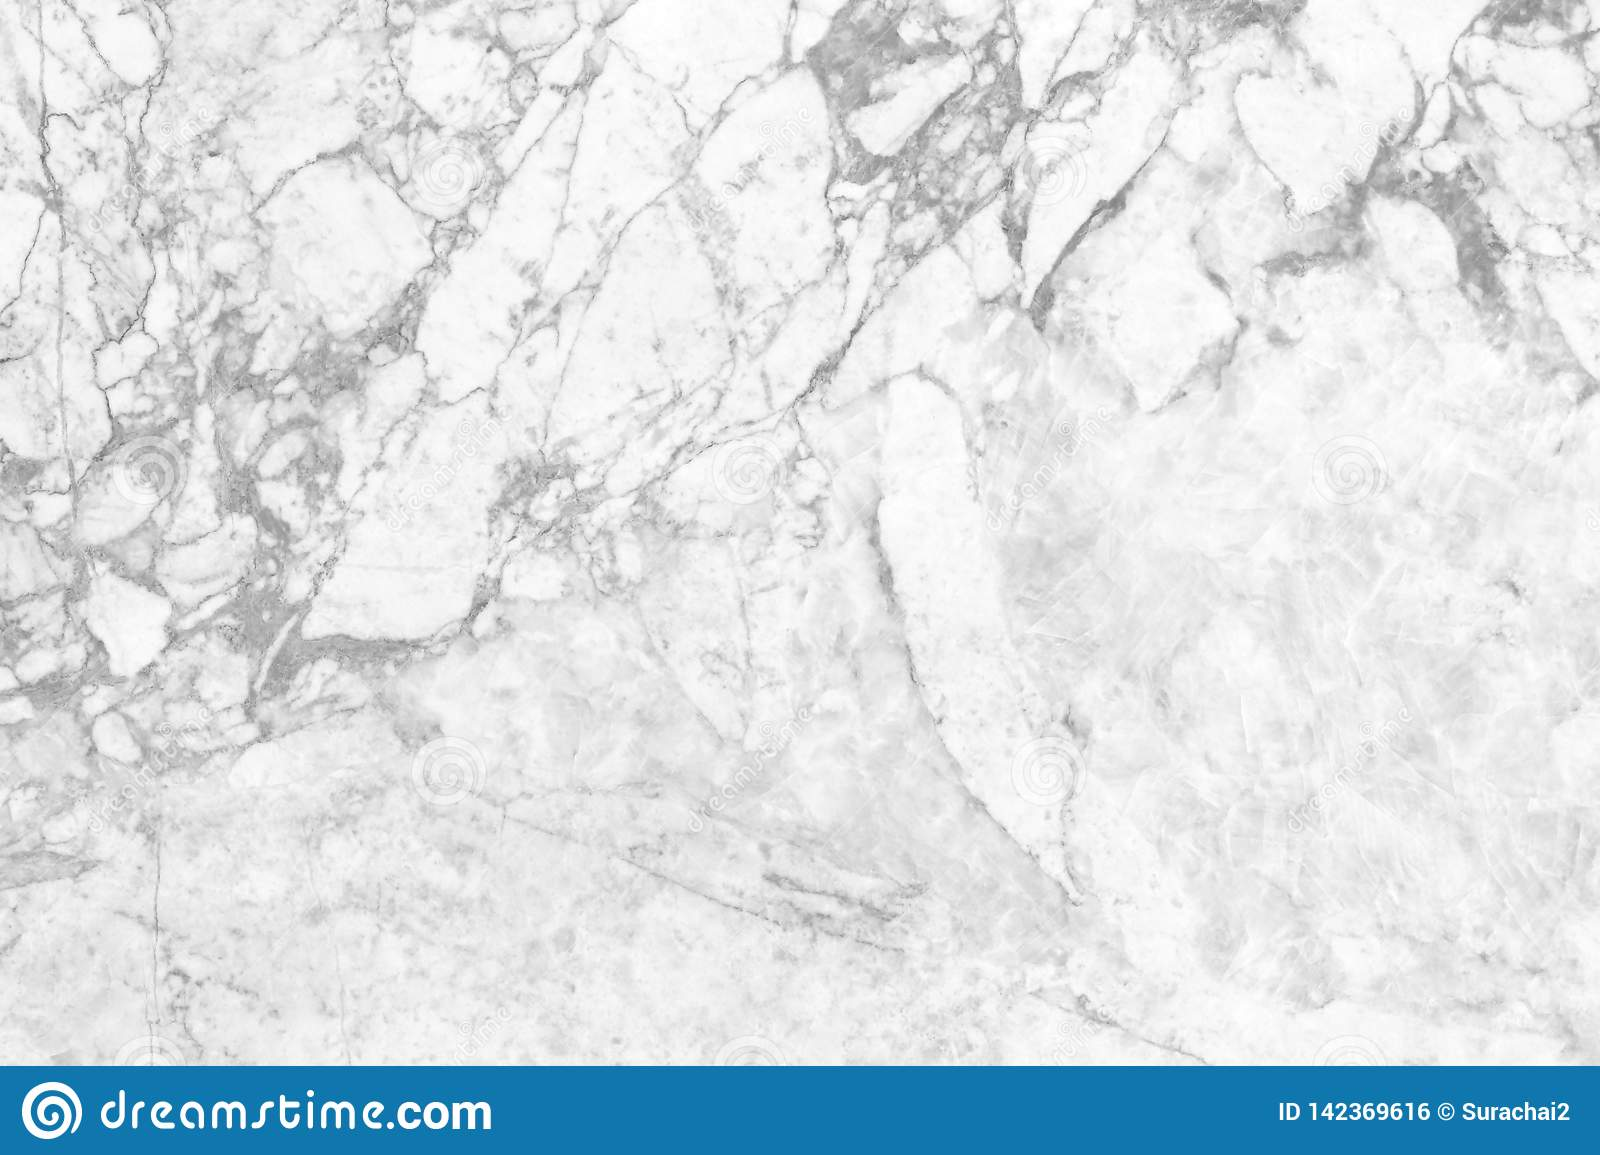 White marble texture abstract. white nature background.